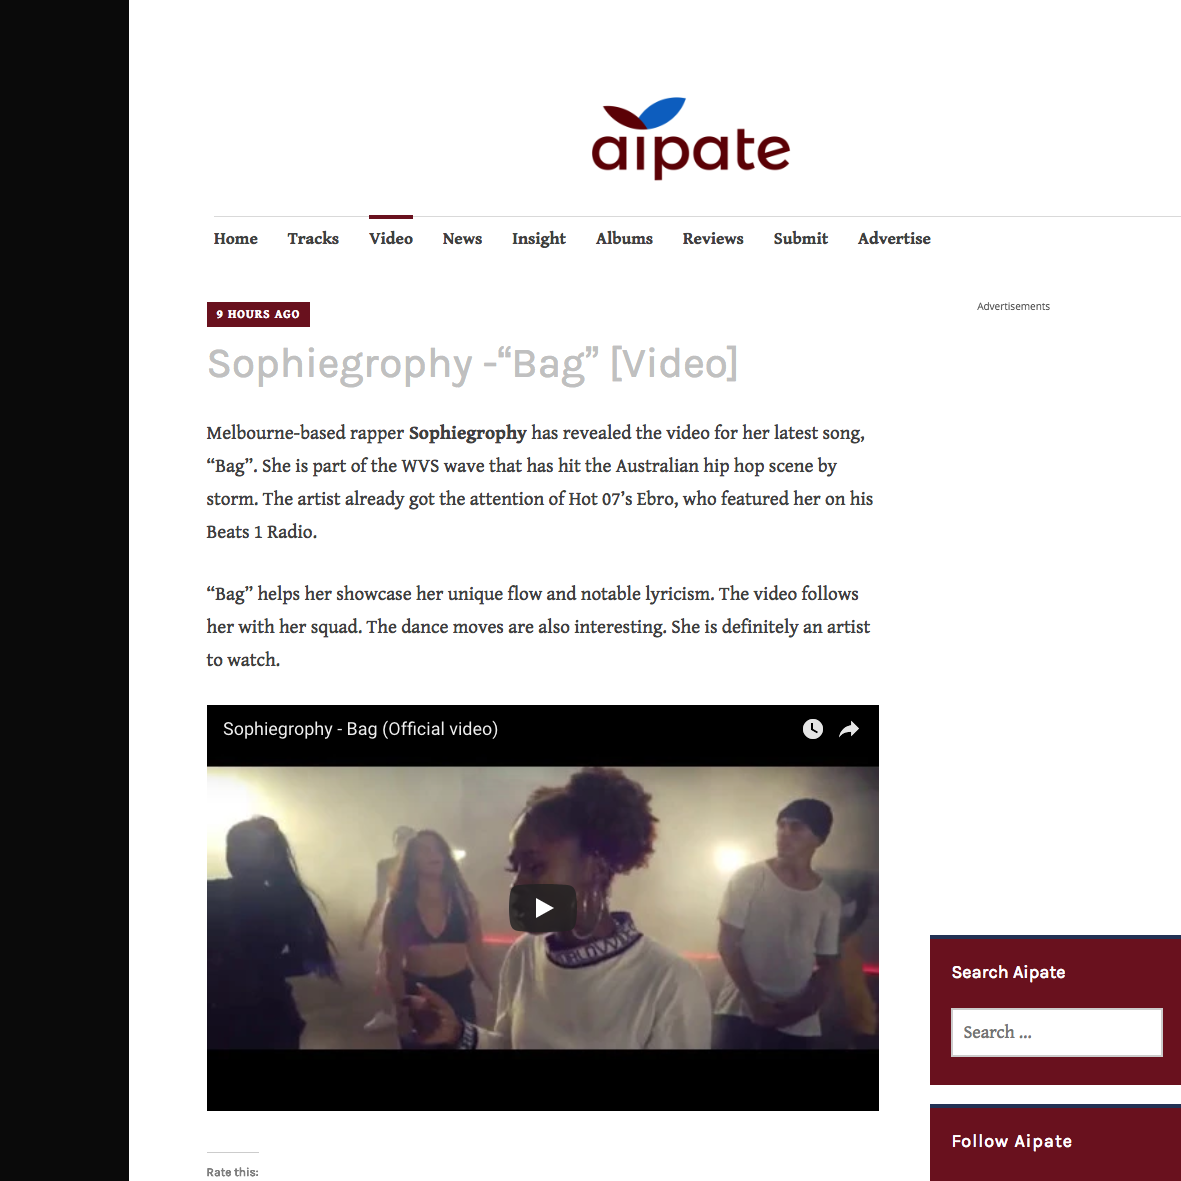 Aipate - May 16th 2018